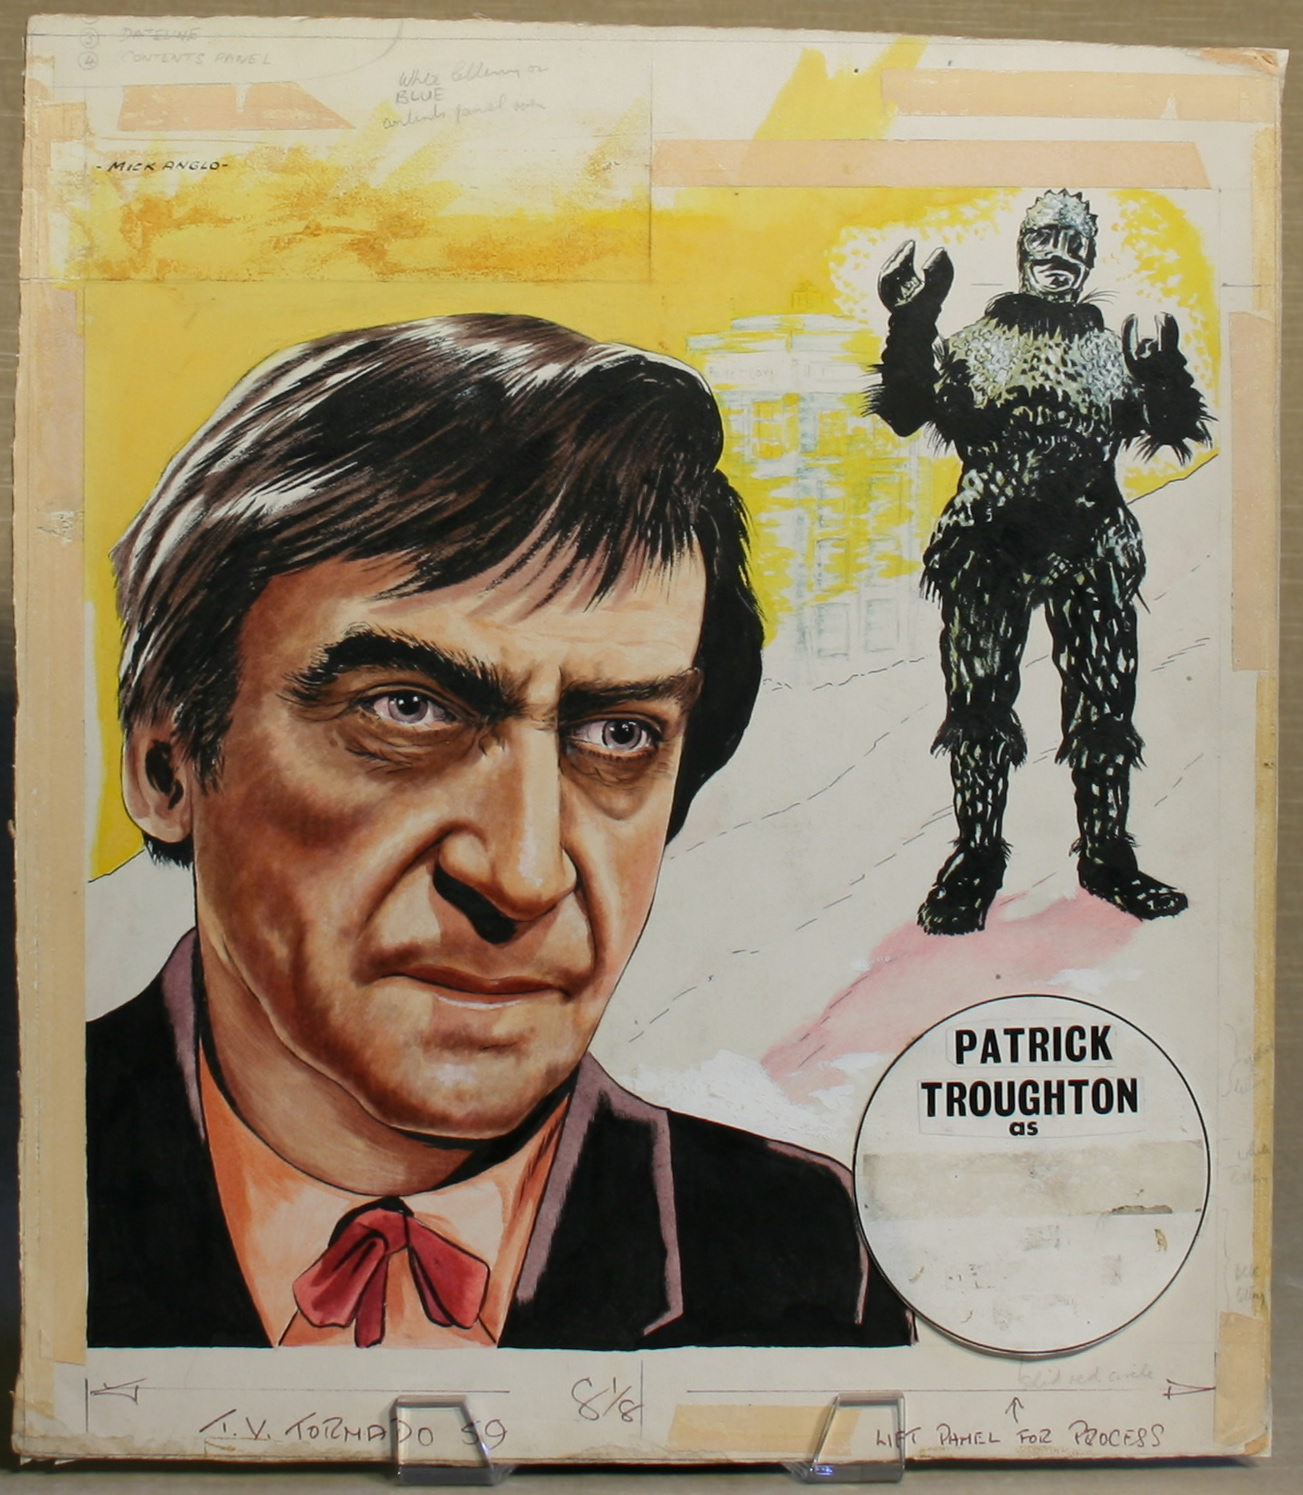 Original artwork painted by Mick Anglo for the cover of TV Tornado, number 59, 24 February 1968